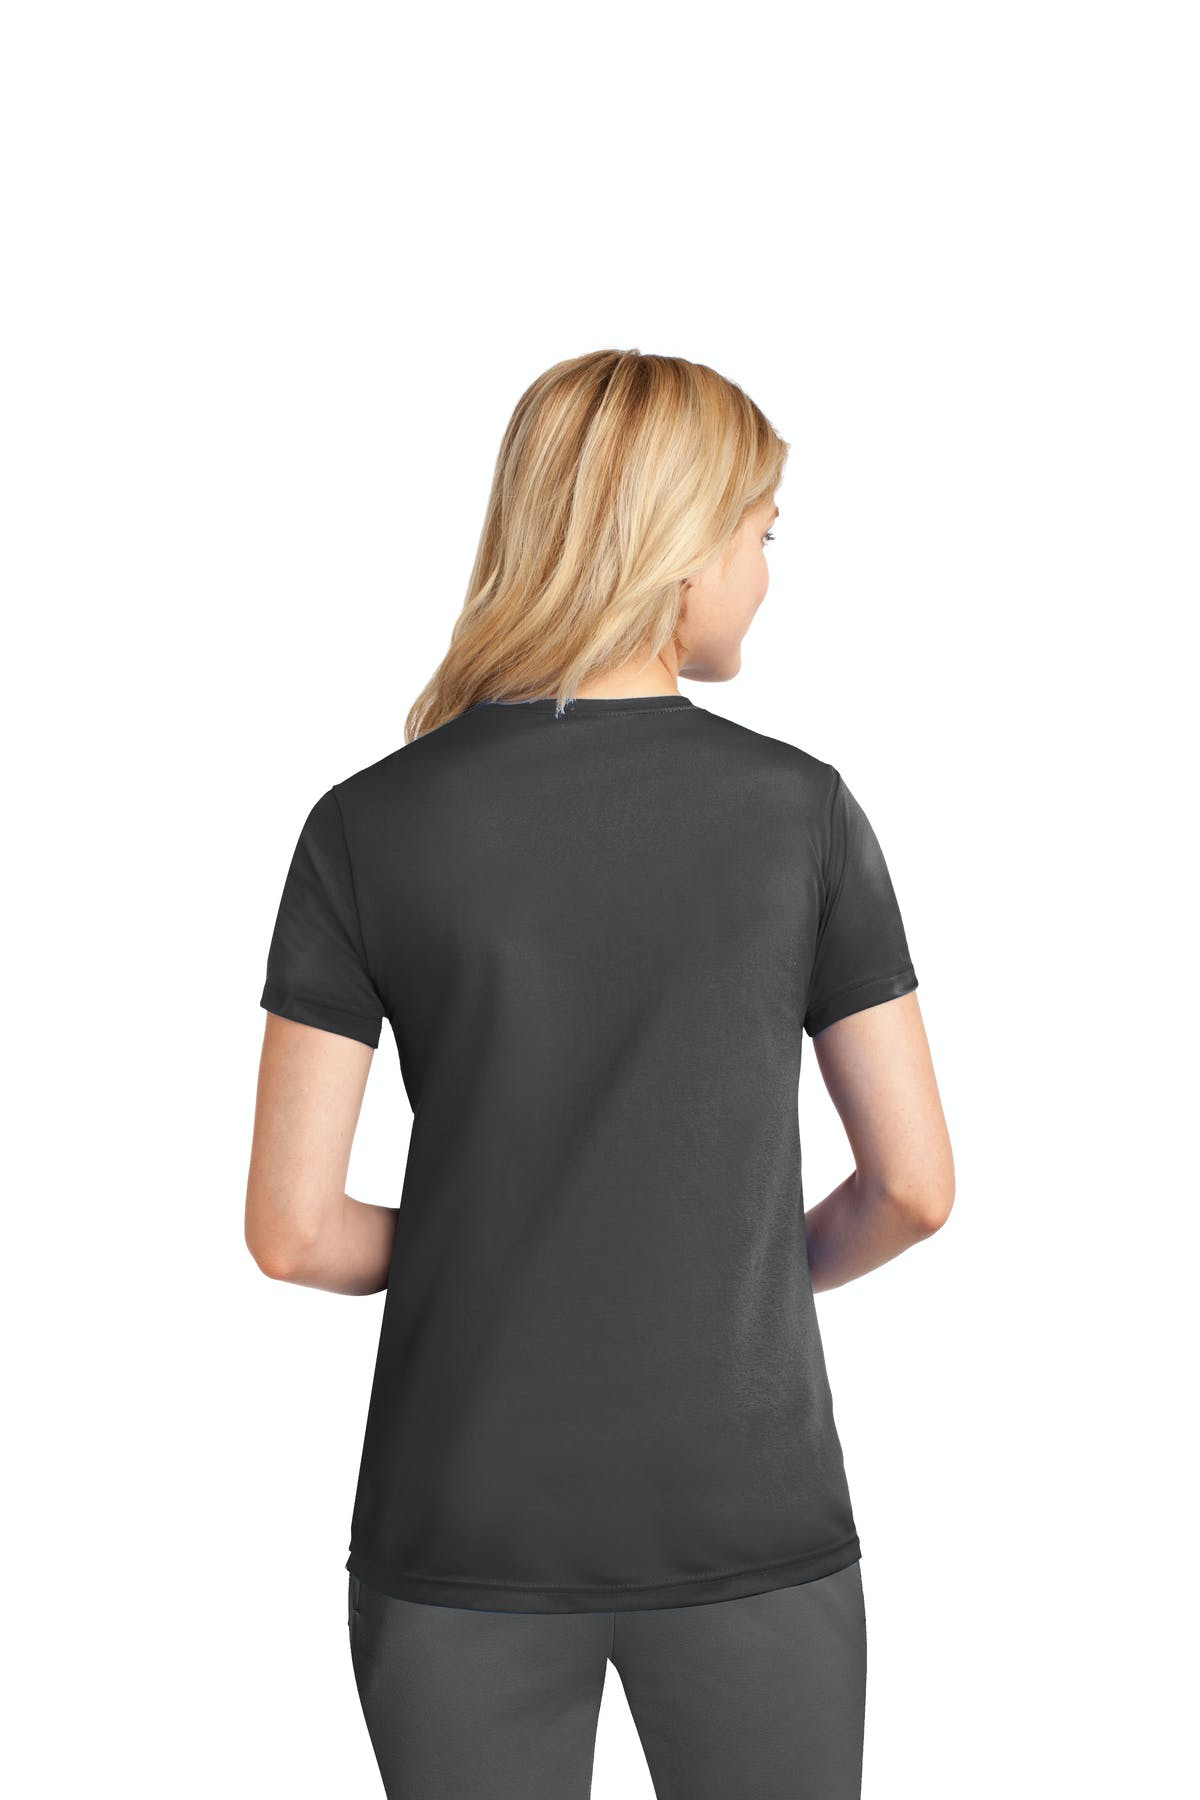 Port & Company® Ladies Performance Tee - sold by PRINT CITY GRAPHICS, INC